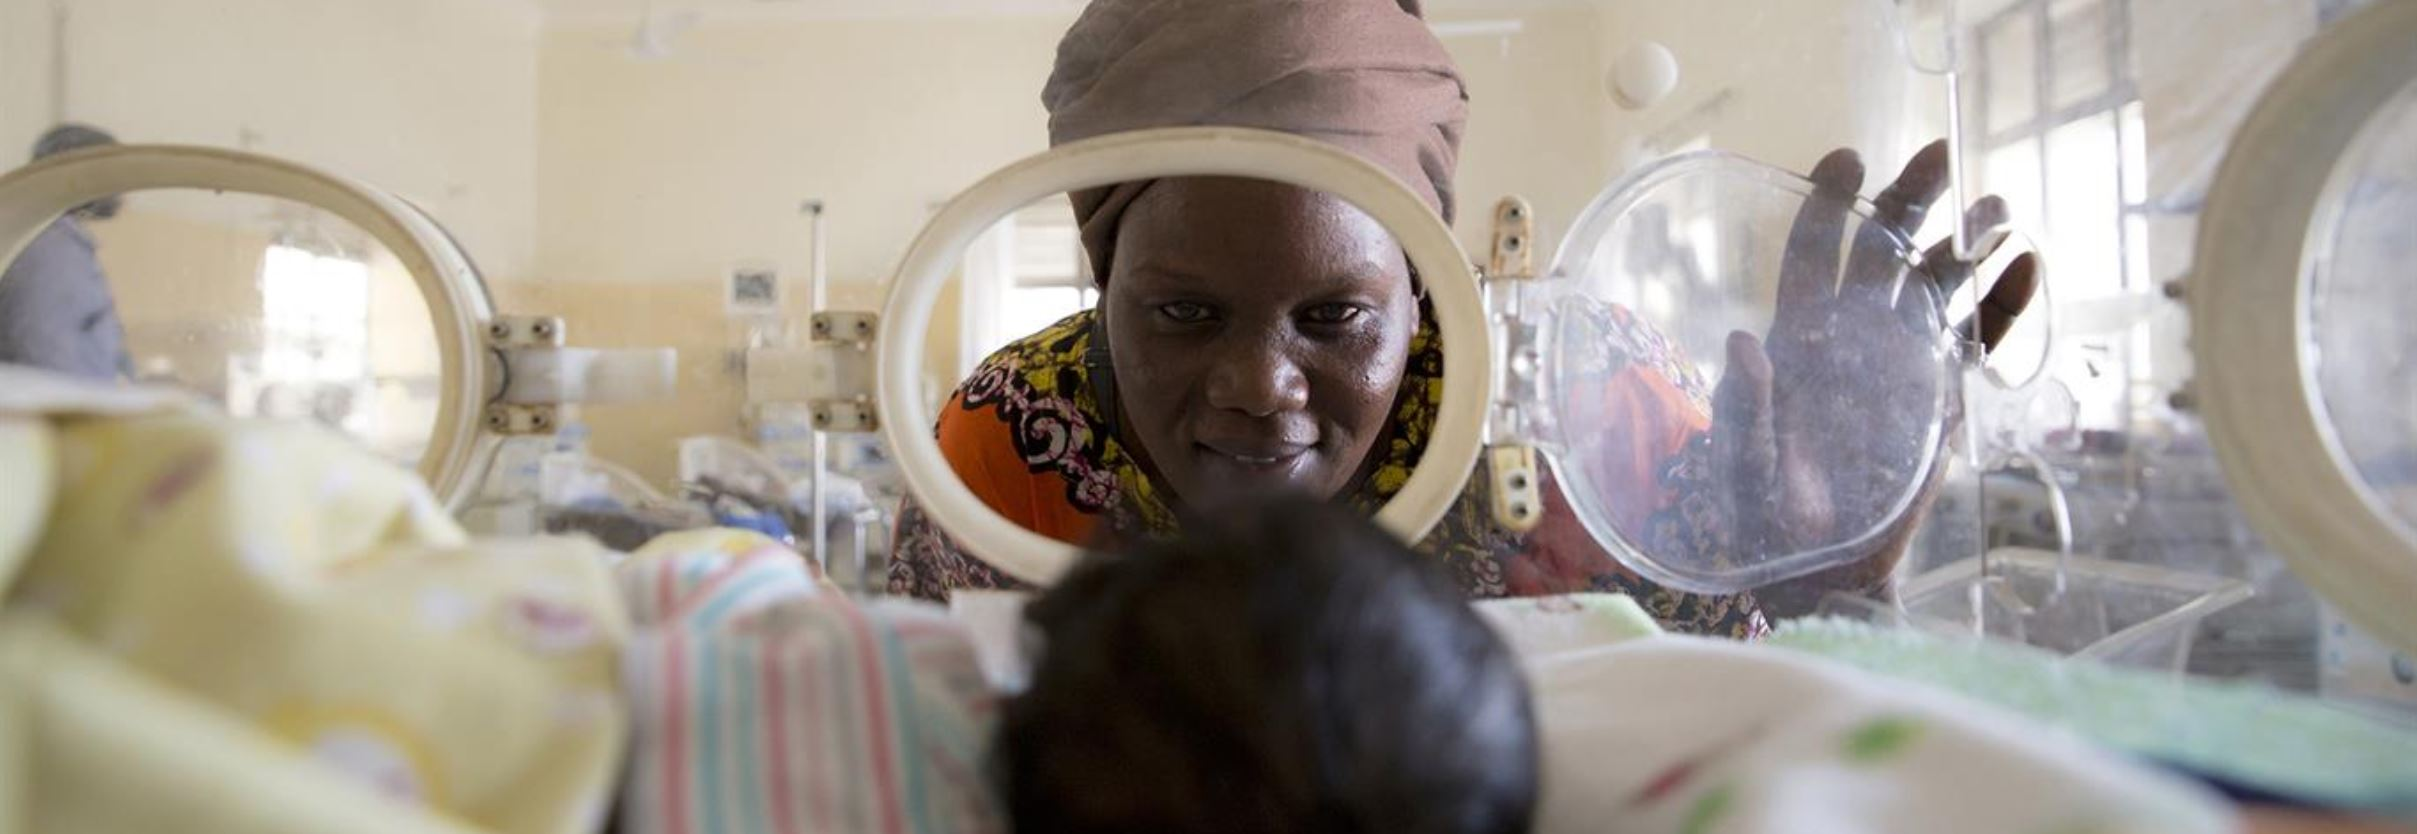 1 in 7 Babies worldwide born with a low birth weight